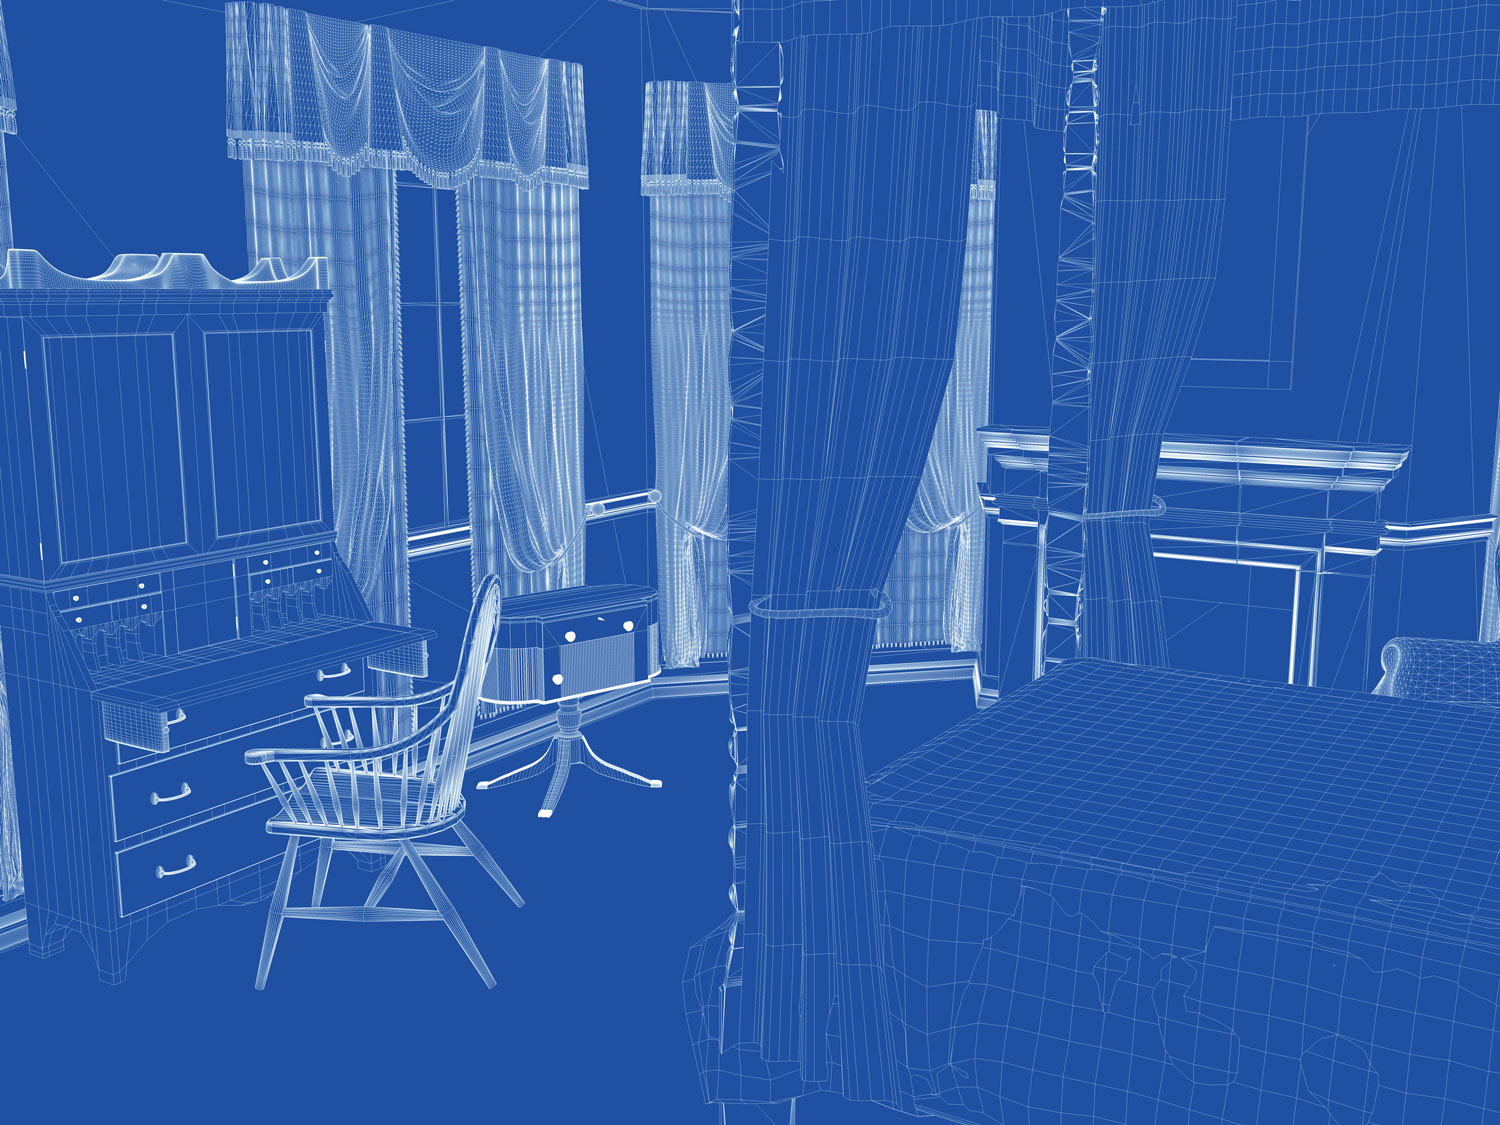 Wireframe View of the Bedroom